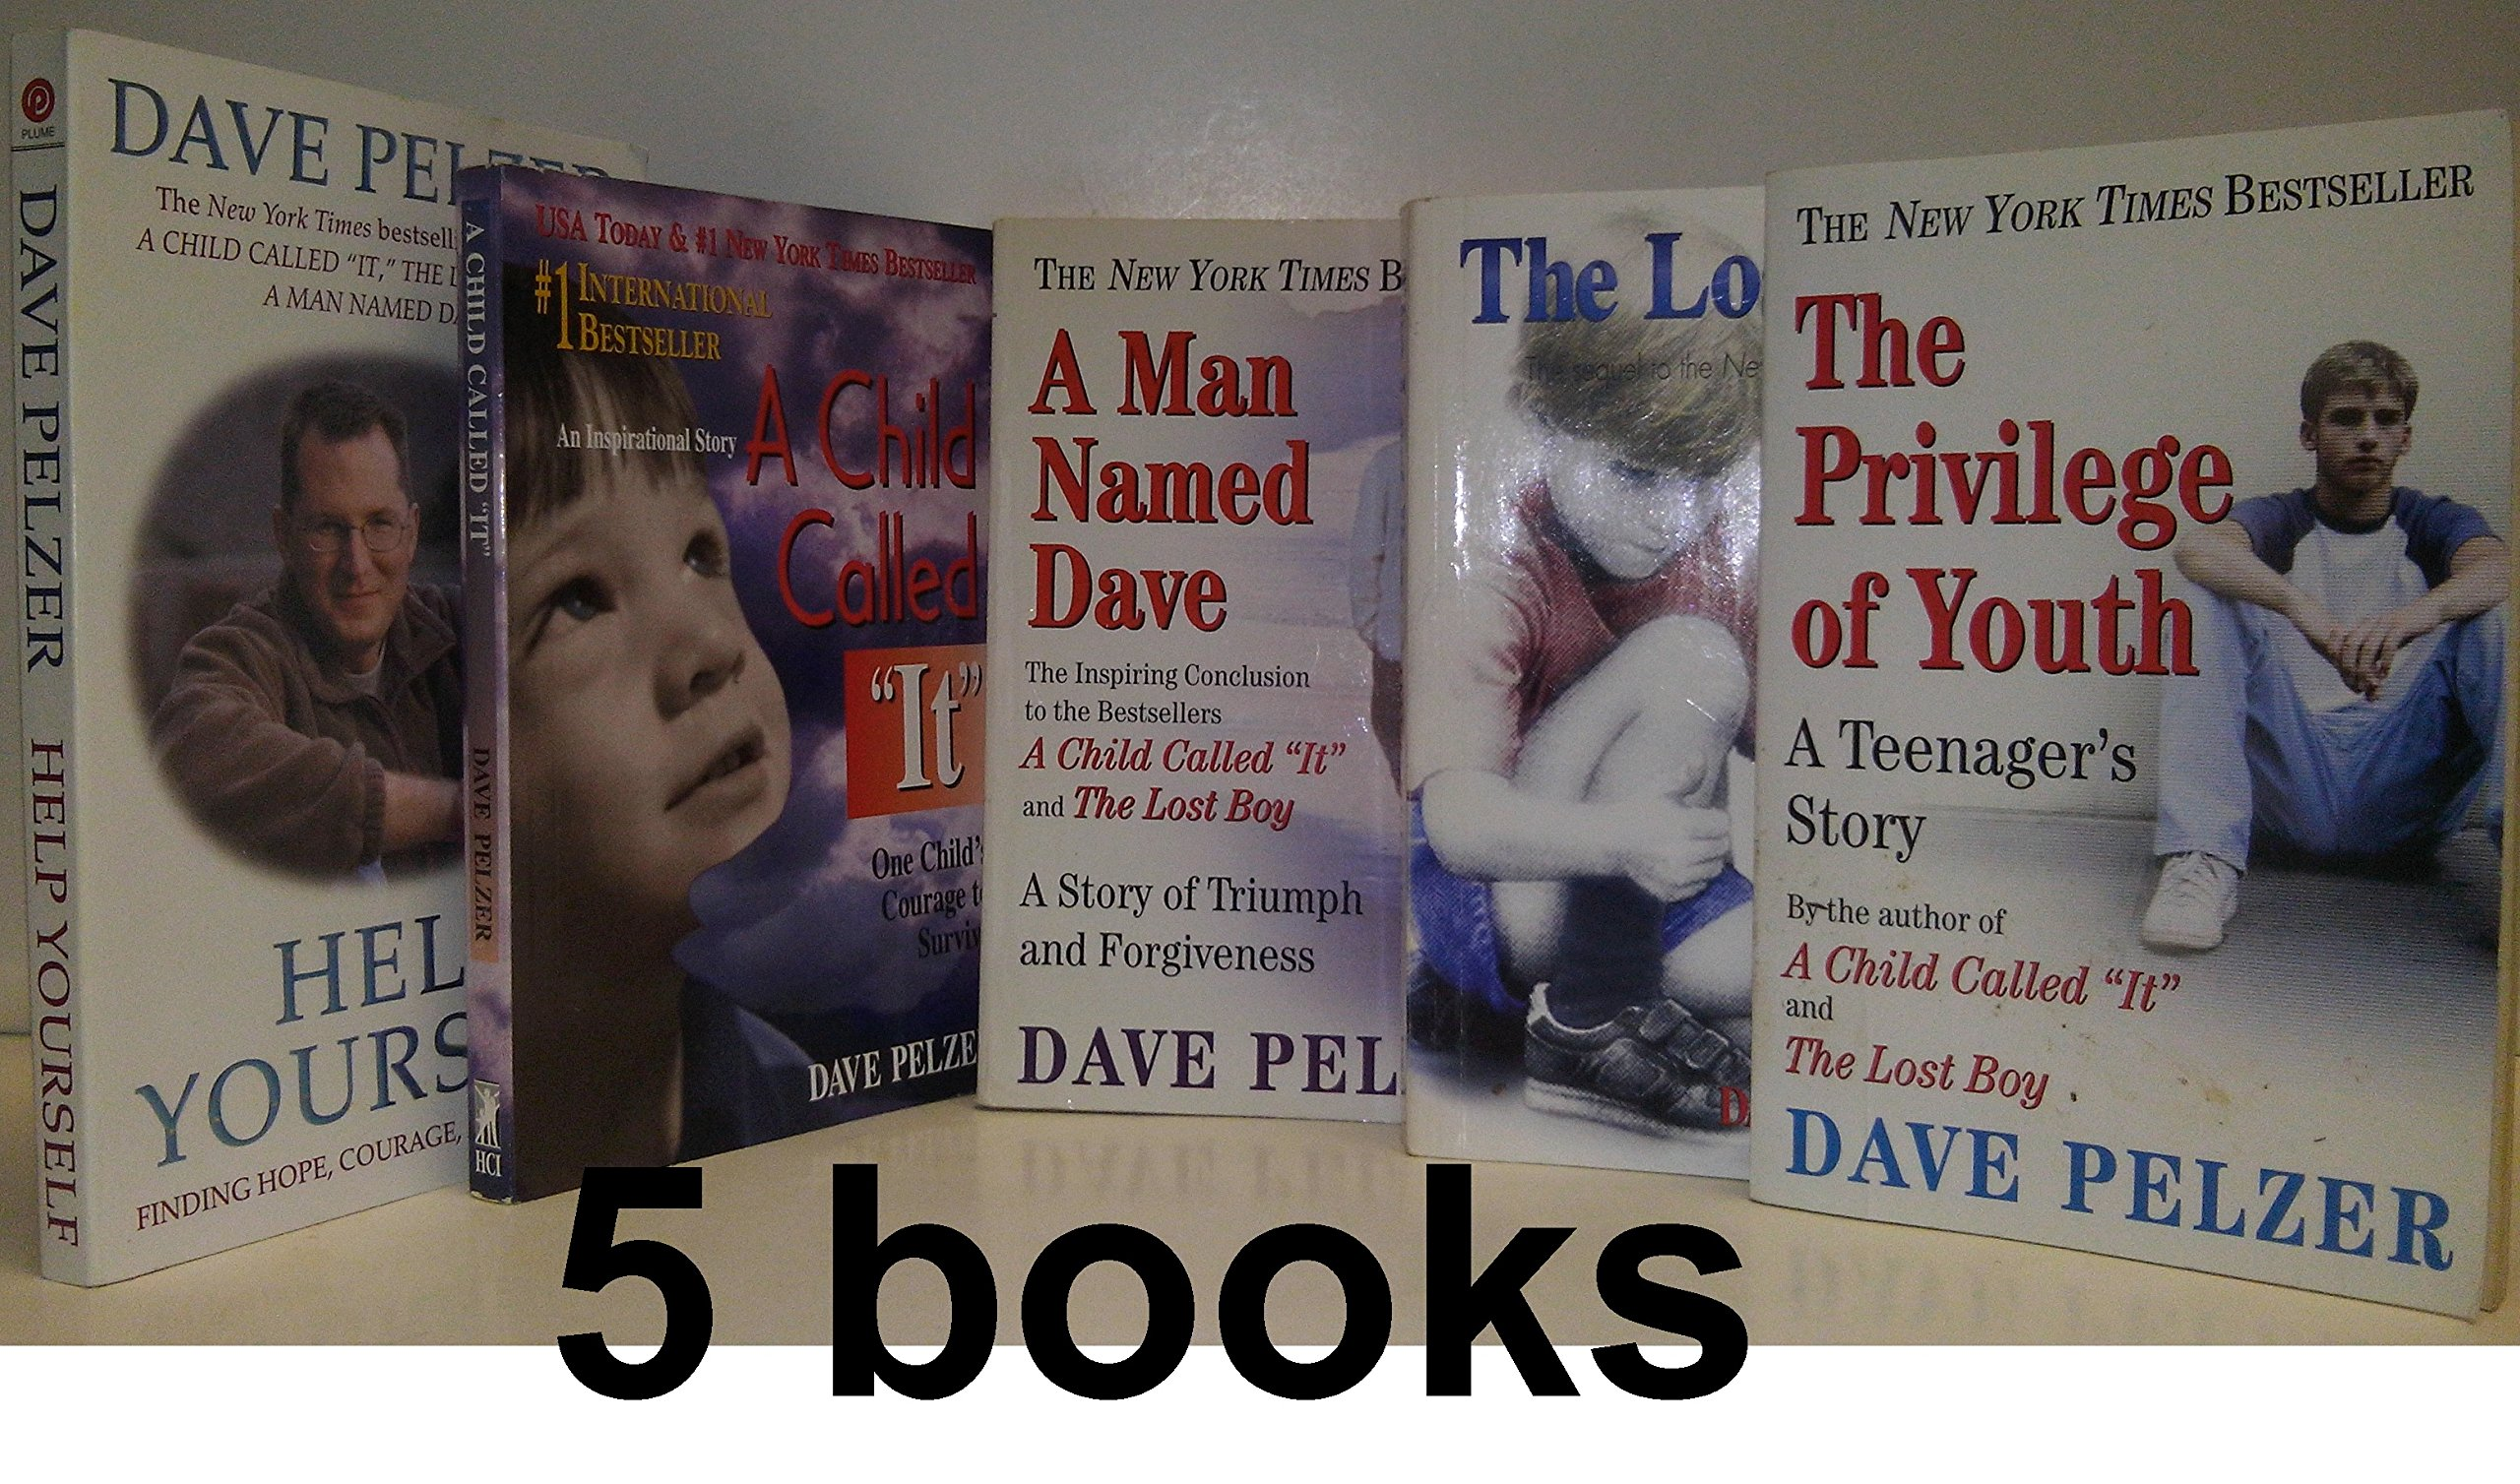 dave pelzer set book set a man d dave a child called it dave pelzer set 5 book set a man d dave a child called it the lost boy the privilege of youth help yourself dave pelzer com books